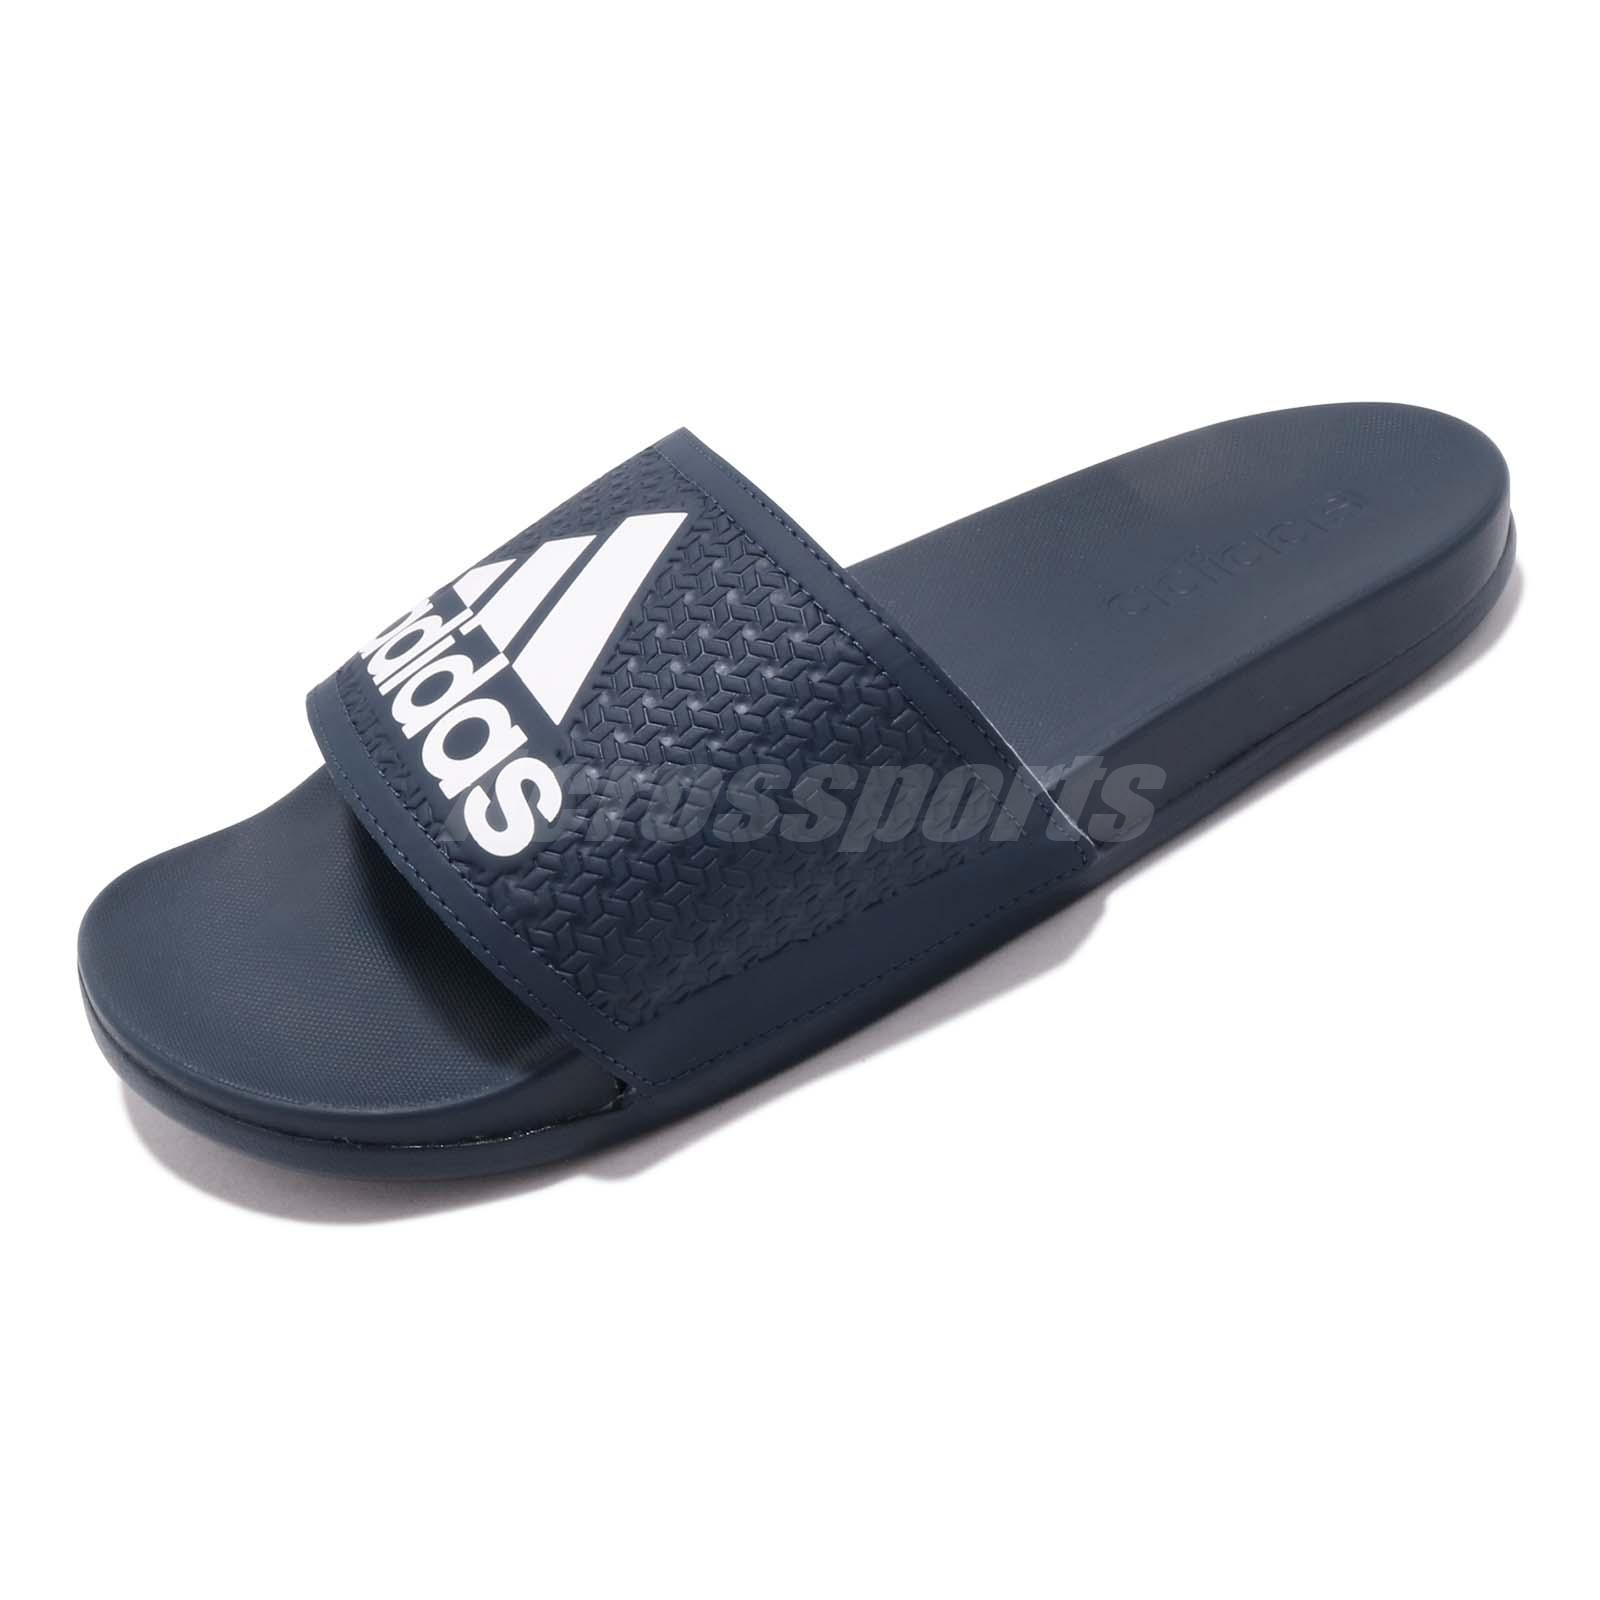 cd5d132ef37 Buy cheap adidas supercloud slippers  Up to OFF45% Discounts